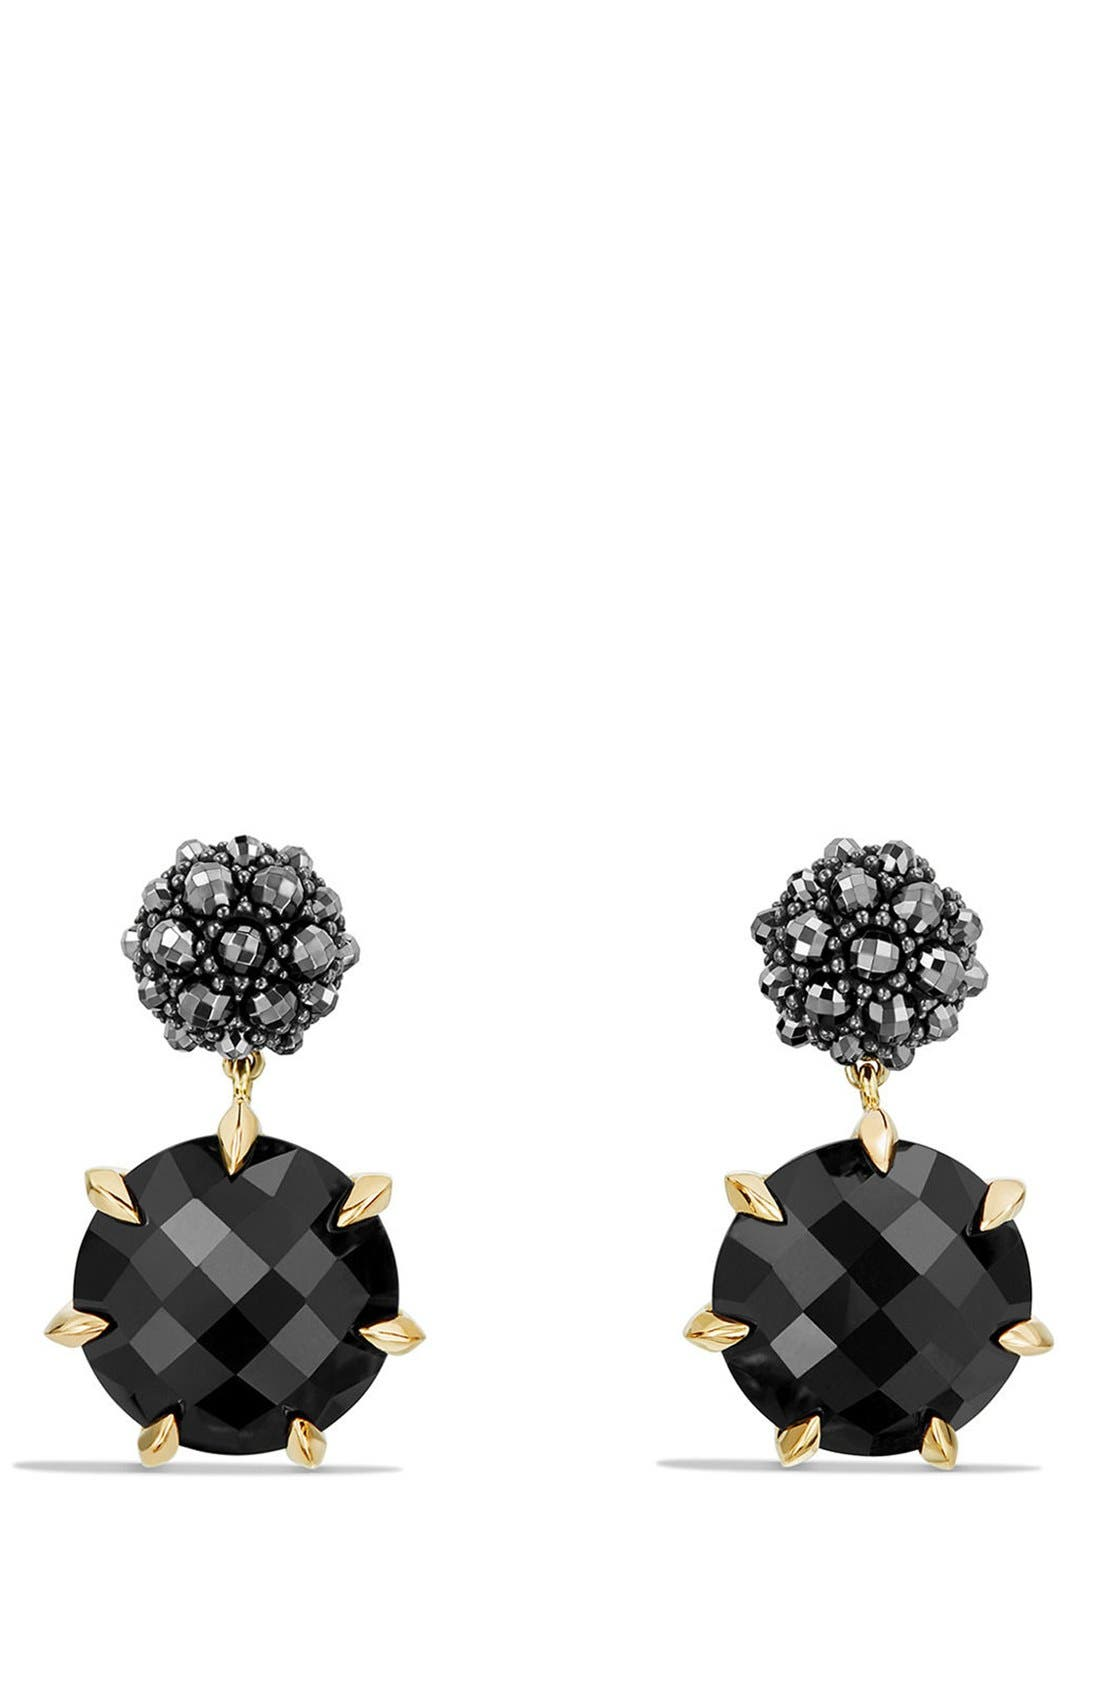 Cable Berries Drop Earrings with 18K Gold,                             Main thumbnail 1, color,                             BLACK ONYX/ HEMATINE